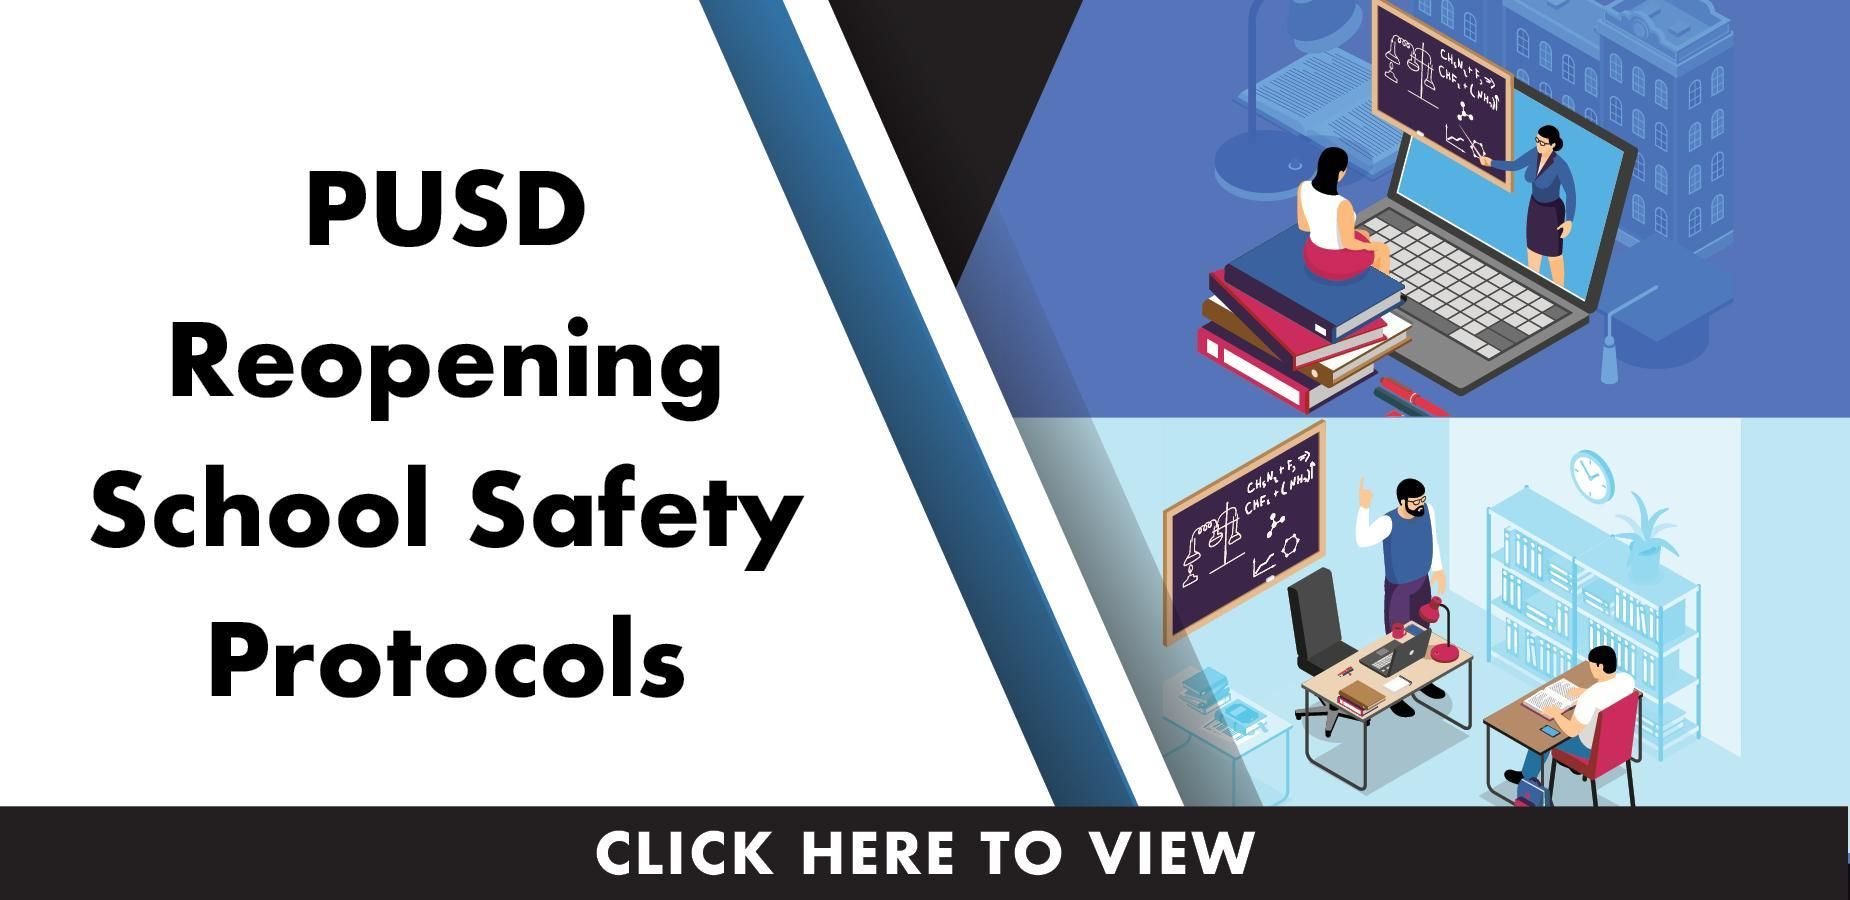 PUSD reopening school safety protocols